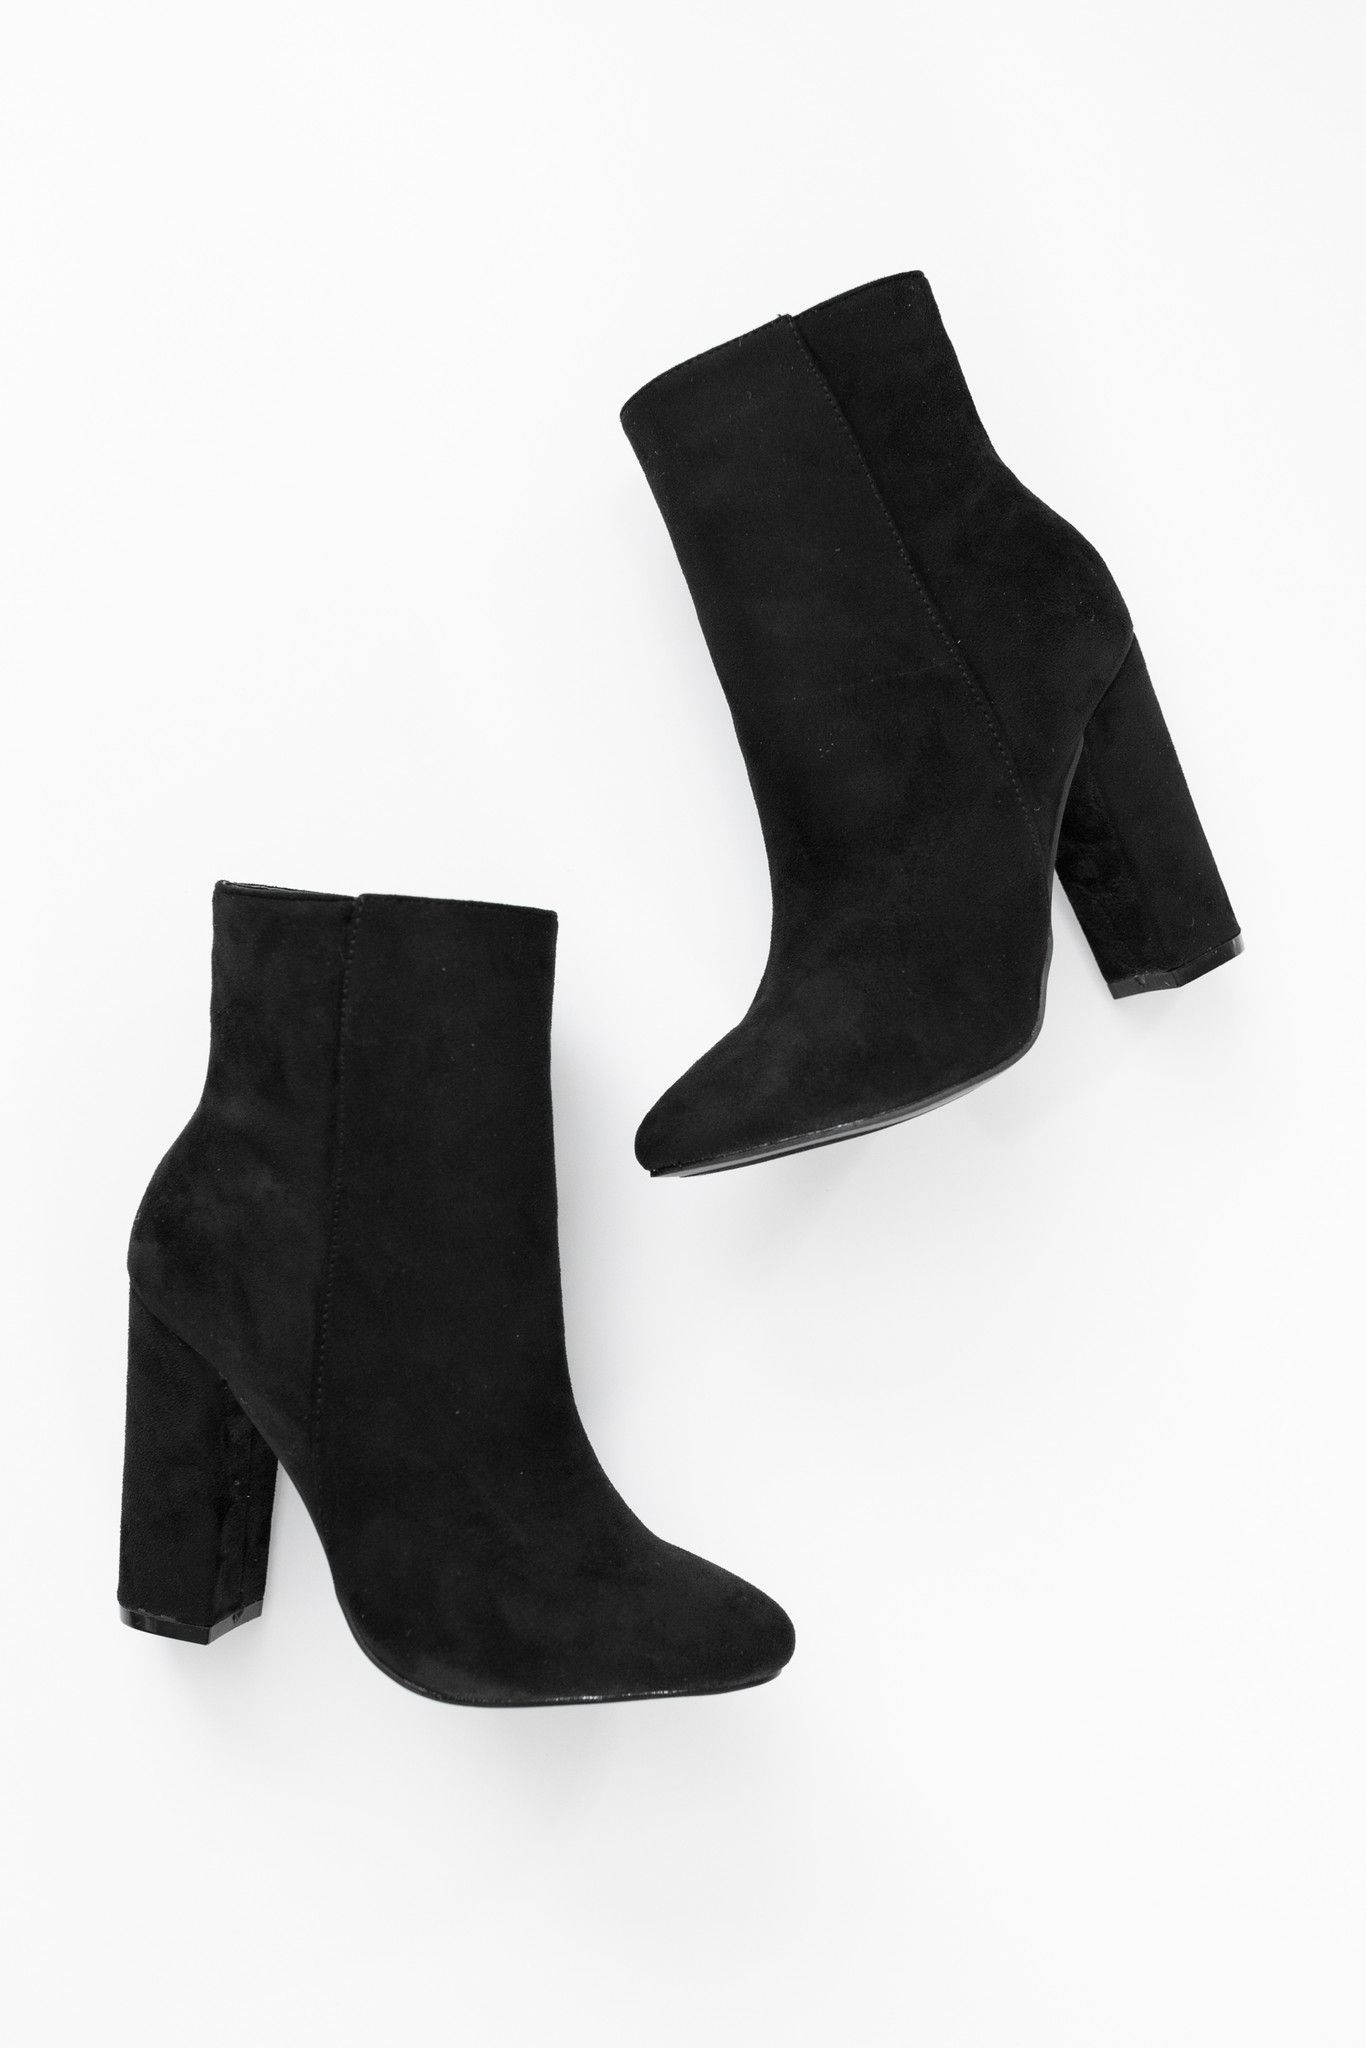 18ed03532c4 Black faux suede high ankle booties with side zipper and 4